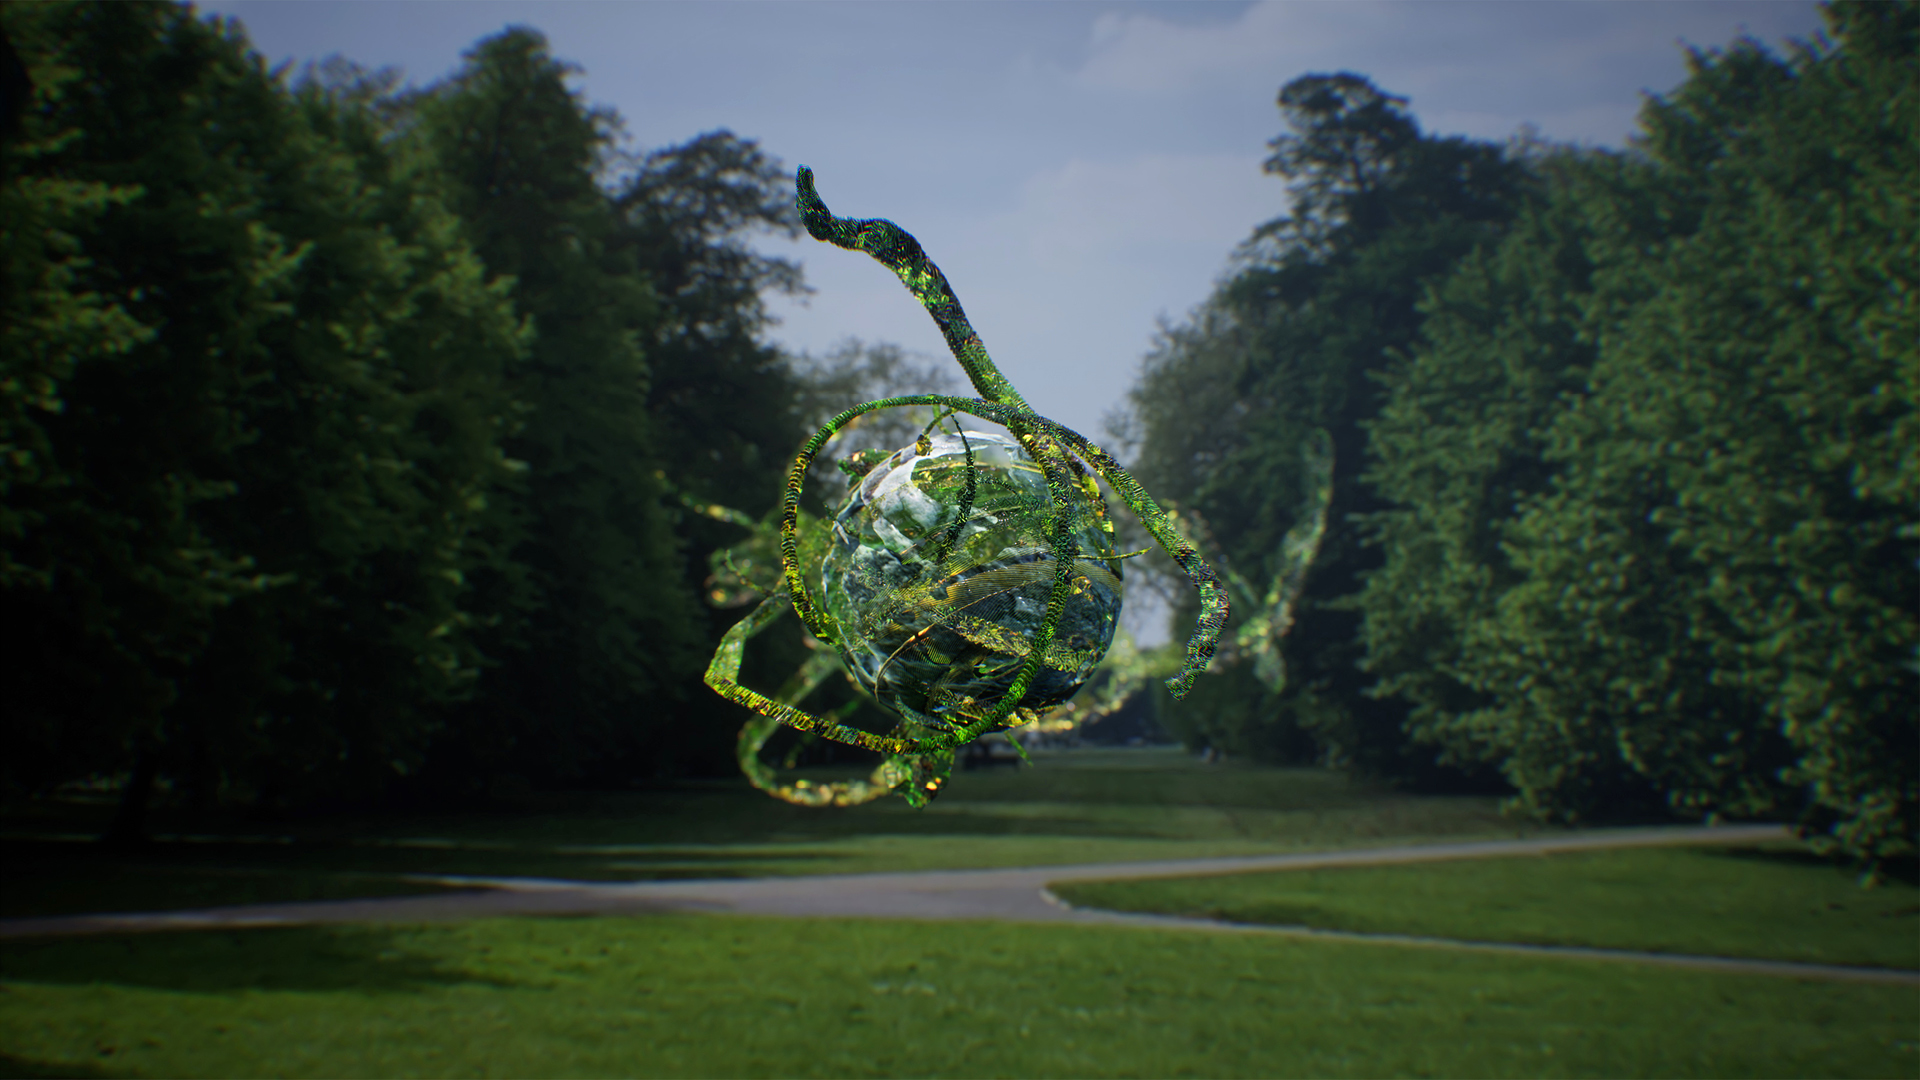 Jakob Kudsk Steensen, The Deep Listener, 2019. AR Visualisation 1. Serpentine Augmented Architecture in collaboration with Google Arts & Culture and Sir David Adjaye OBE | STIRworld